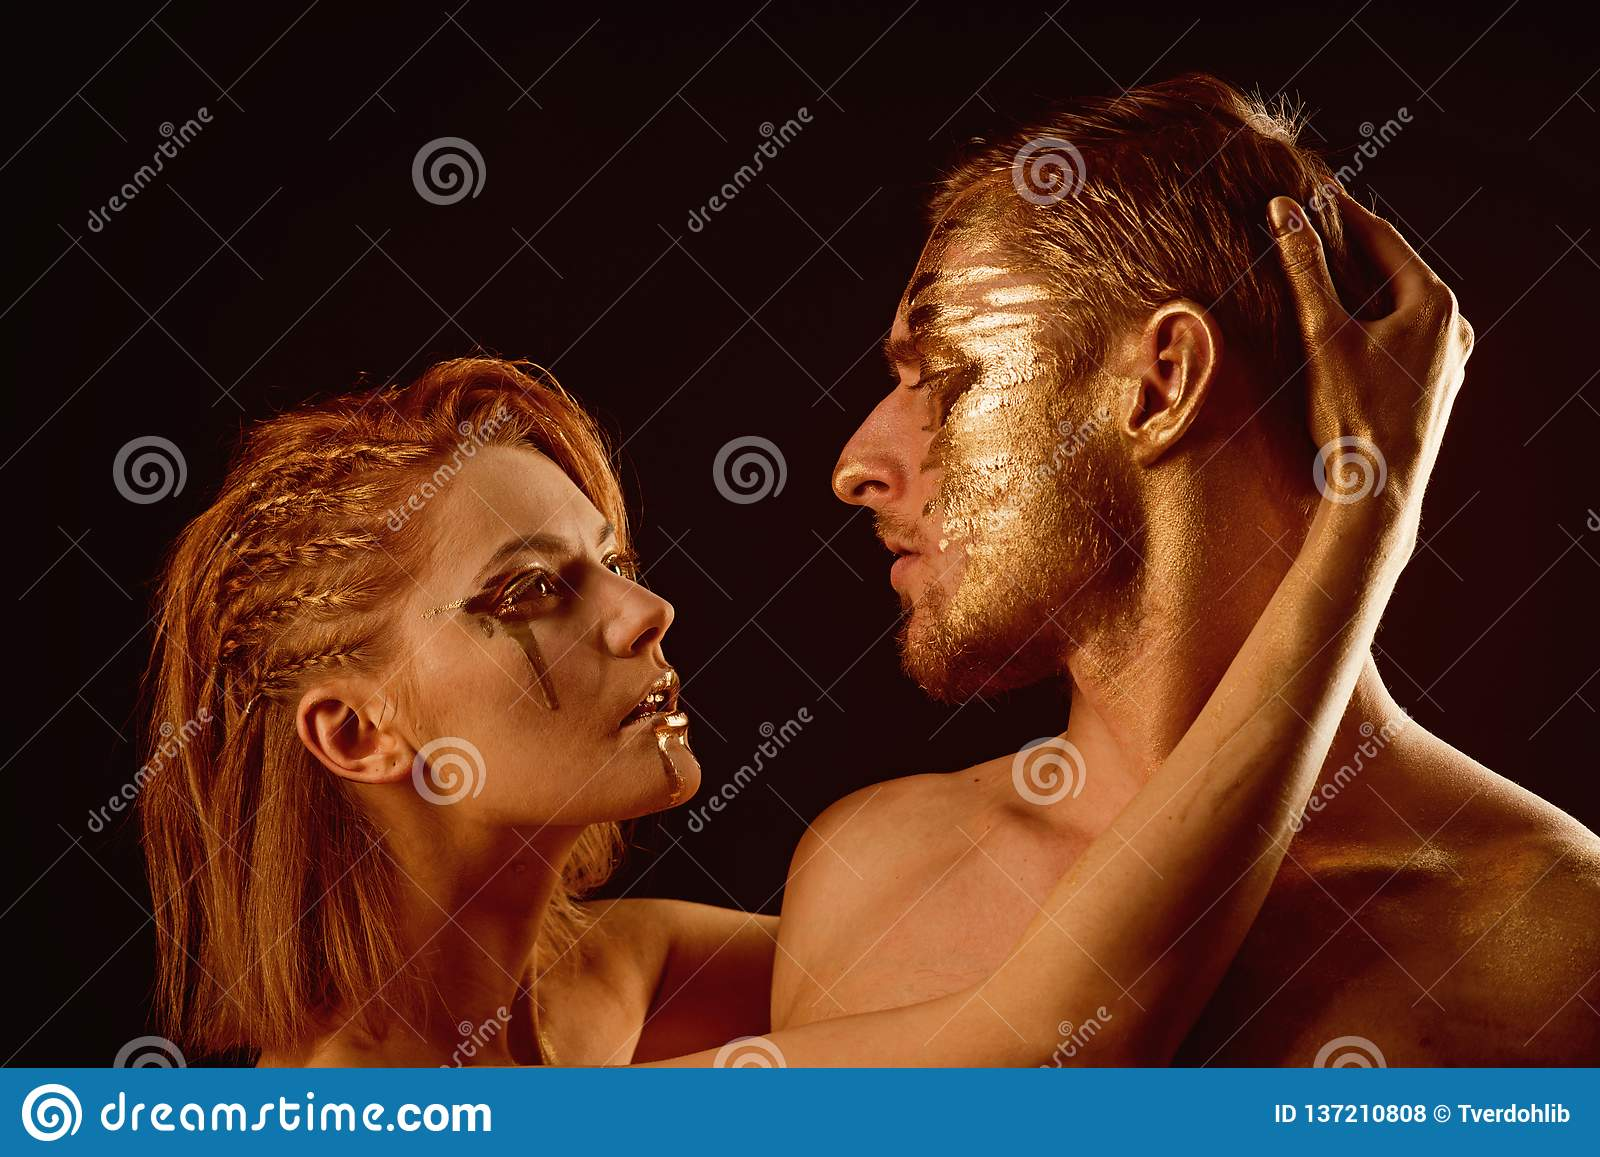 Erotic Games Of Couple In Love Couple With Golden Body Art Makeup Isolated On Black Golden Collagen Mask And Stock Photo Image Of Beauty Isolated 137210808